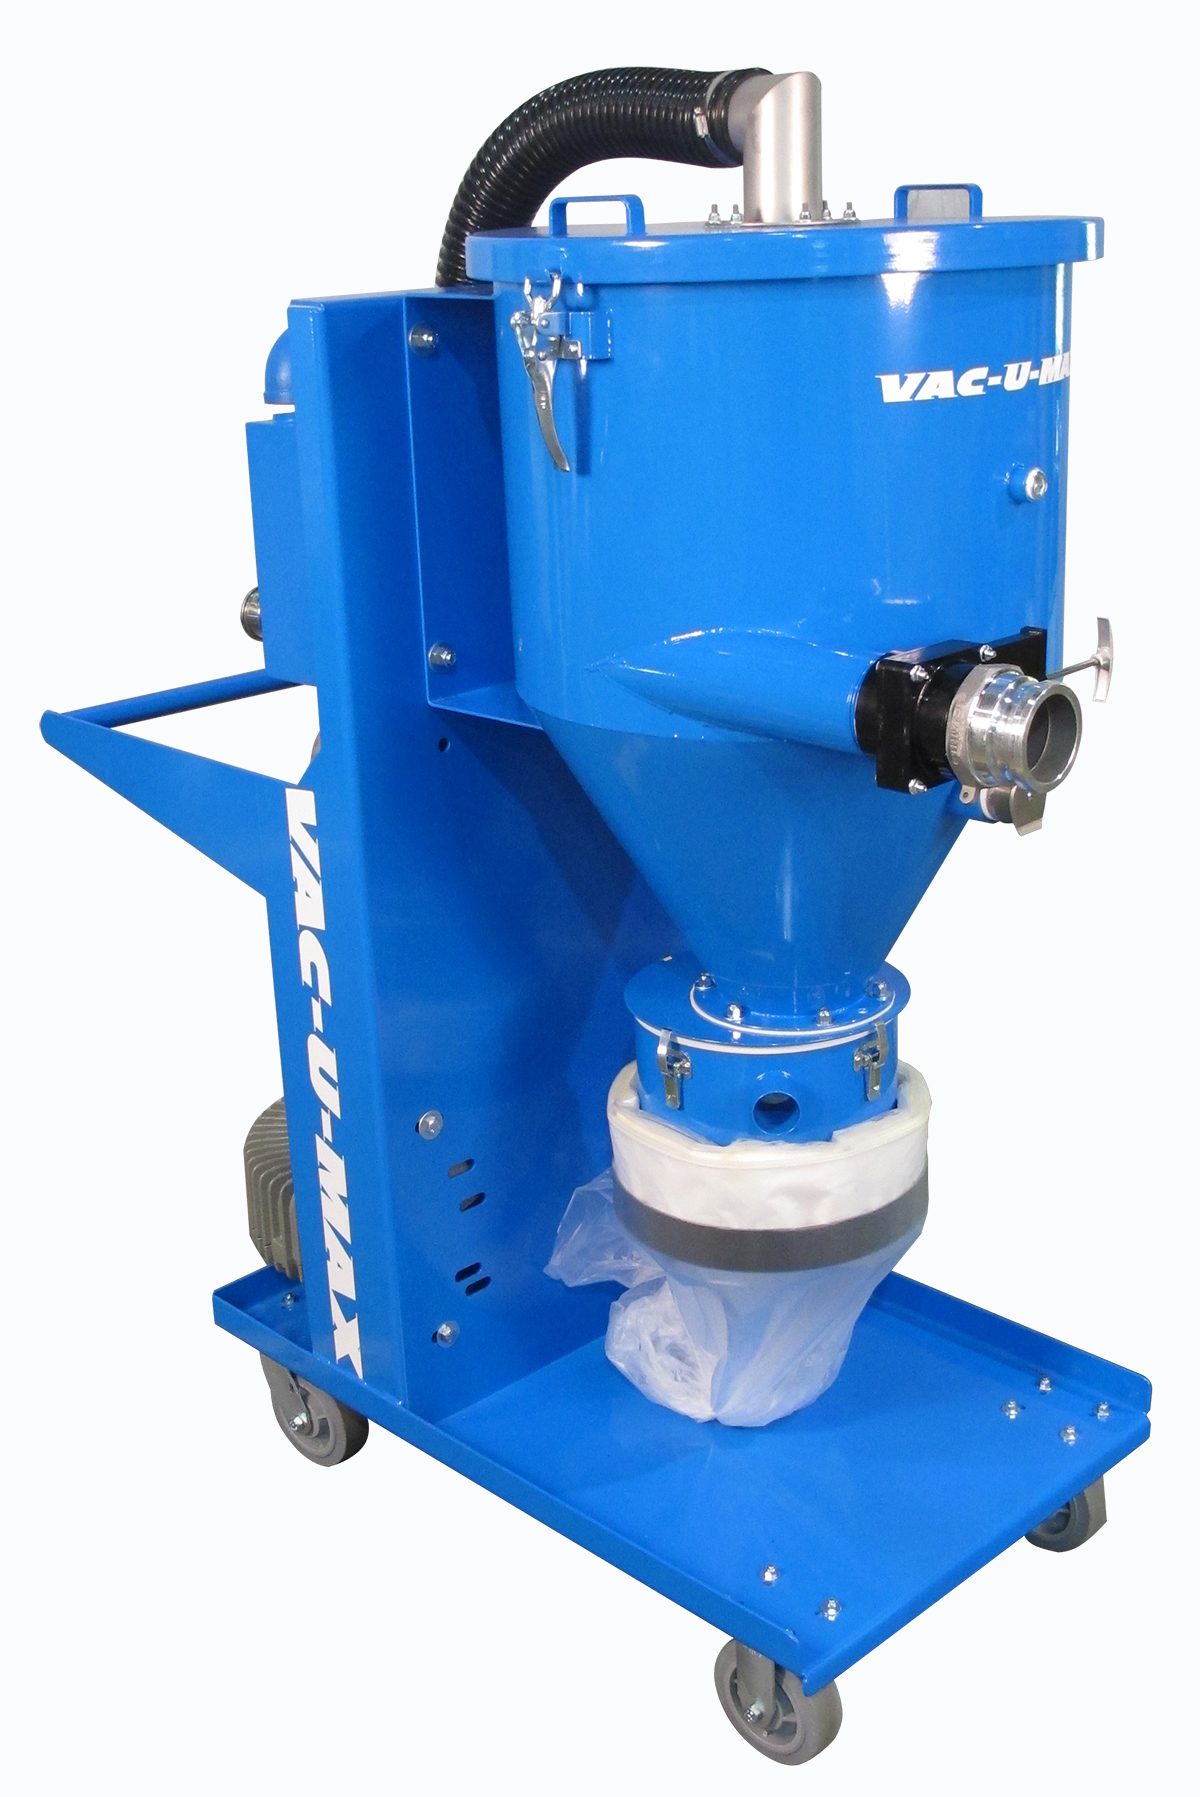 Continuous Duty Industrial Vacuum Cleaner